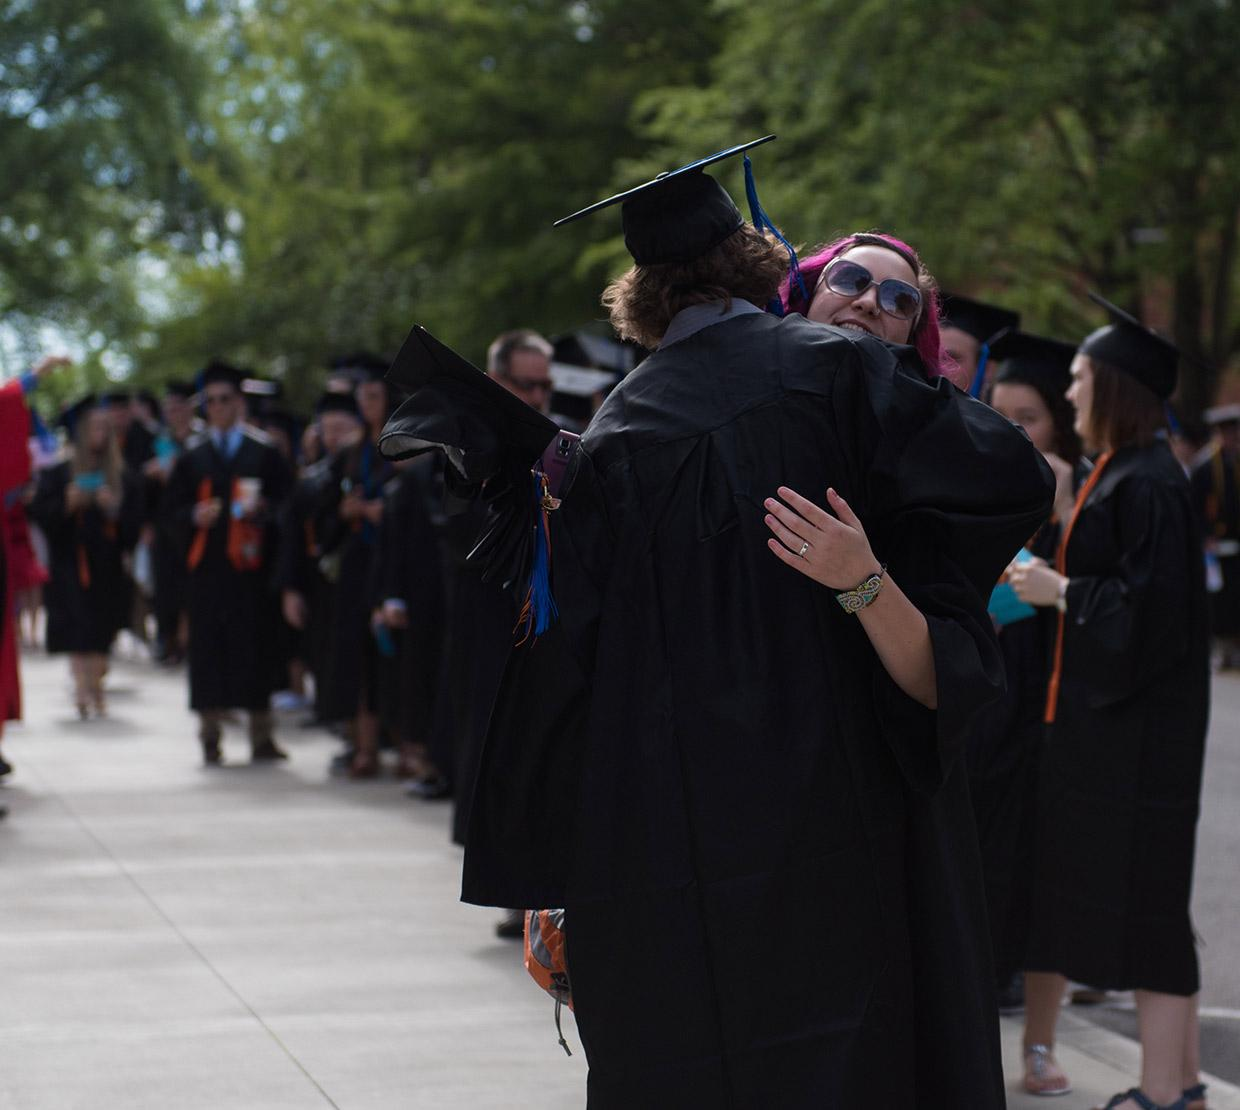 Two graduating students hugging each other in front of line of graduates in gowns